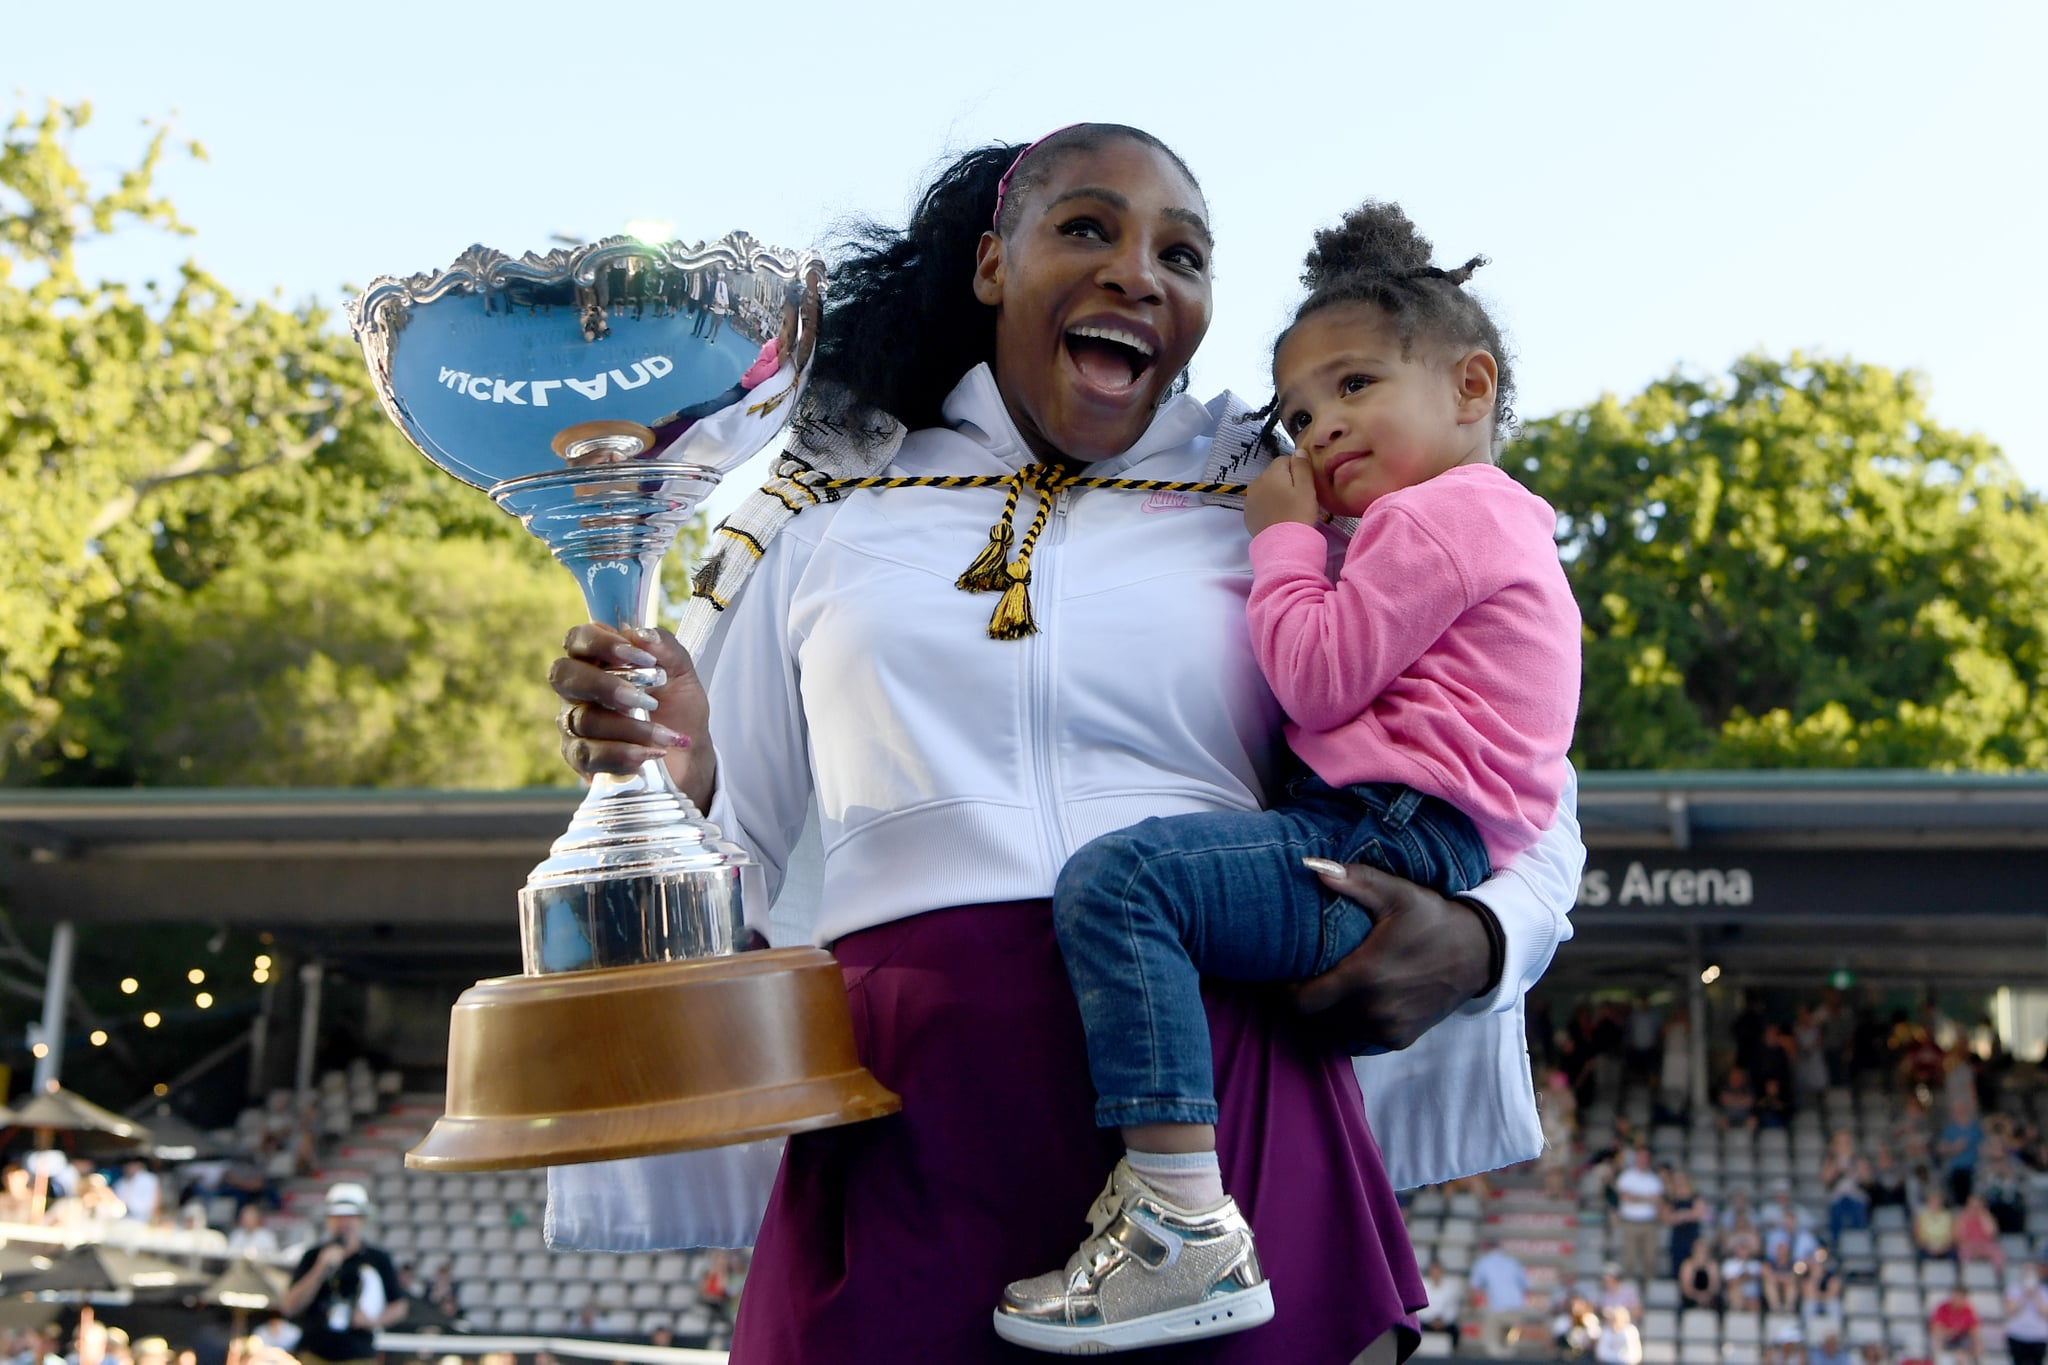 AUCKLAND, NEW ZEALAND - JANUARY 12:  Serena Williams of the USA celebrates with daughter Alexis Olympia after winning the final match against Jessica Pegula of USA at ASB Tennis Centre on January 12, 2020 in Auckland, New Zealand. (Photo by Hannah Peters/Getty Images)